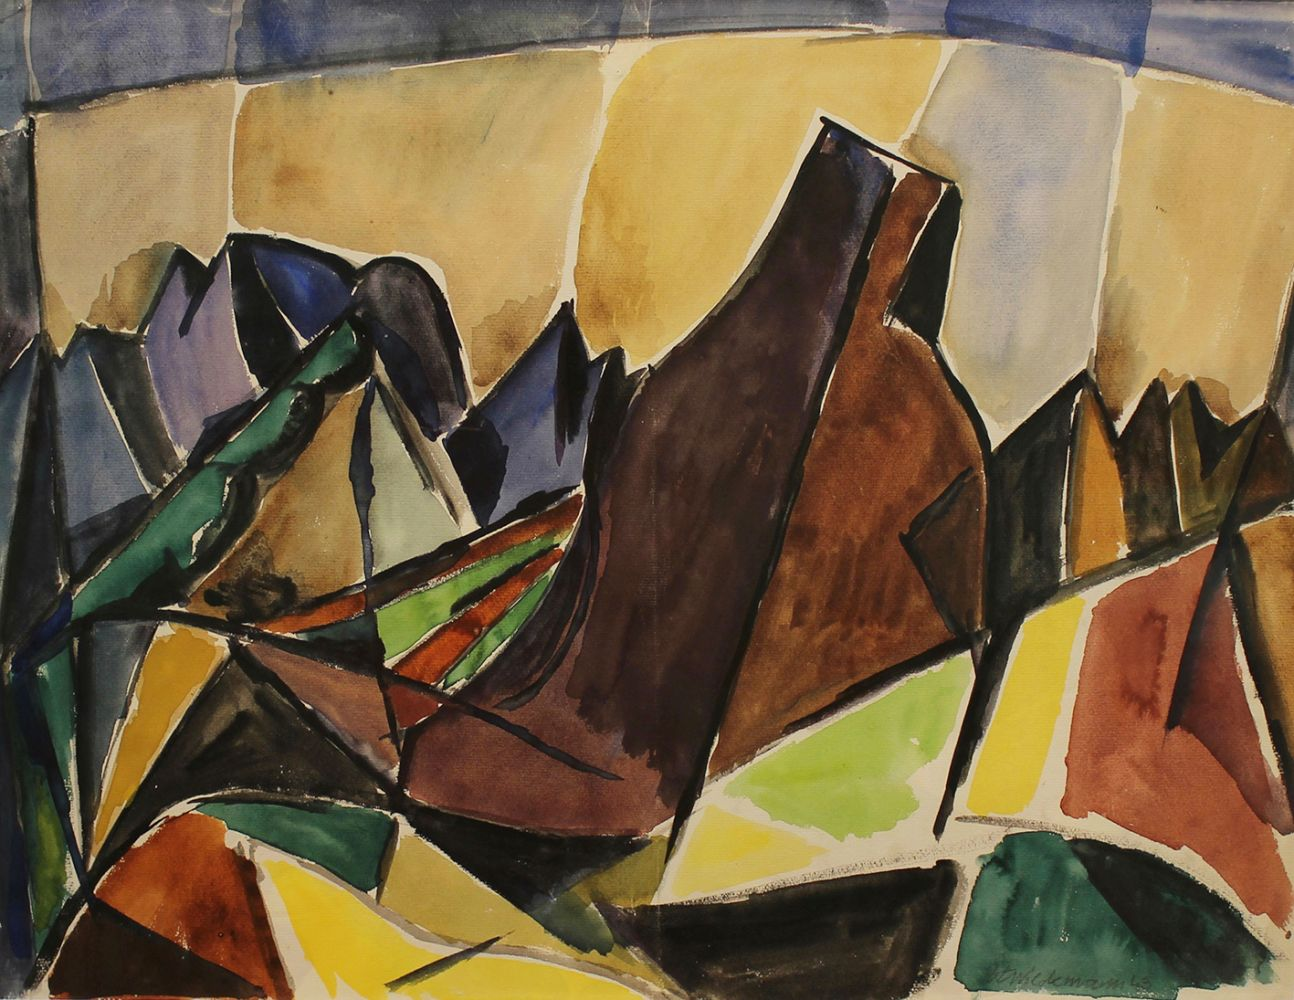 Heinrich Wildmann | Komposition (Landschaft) | 1943 | Aquarell | signiert u. datiert | 62,3 x 31